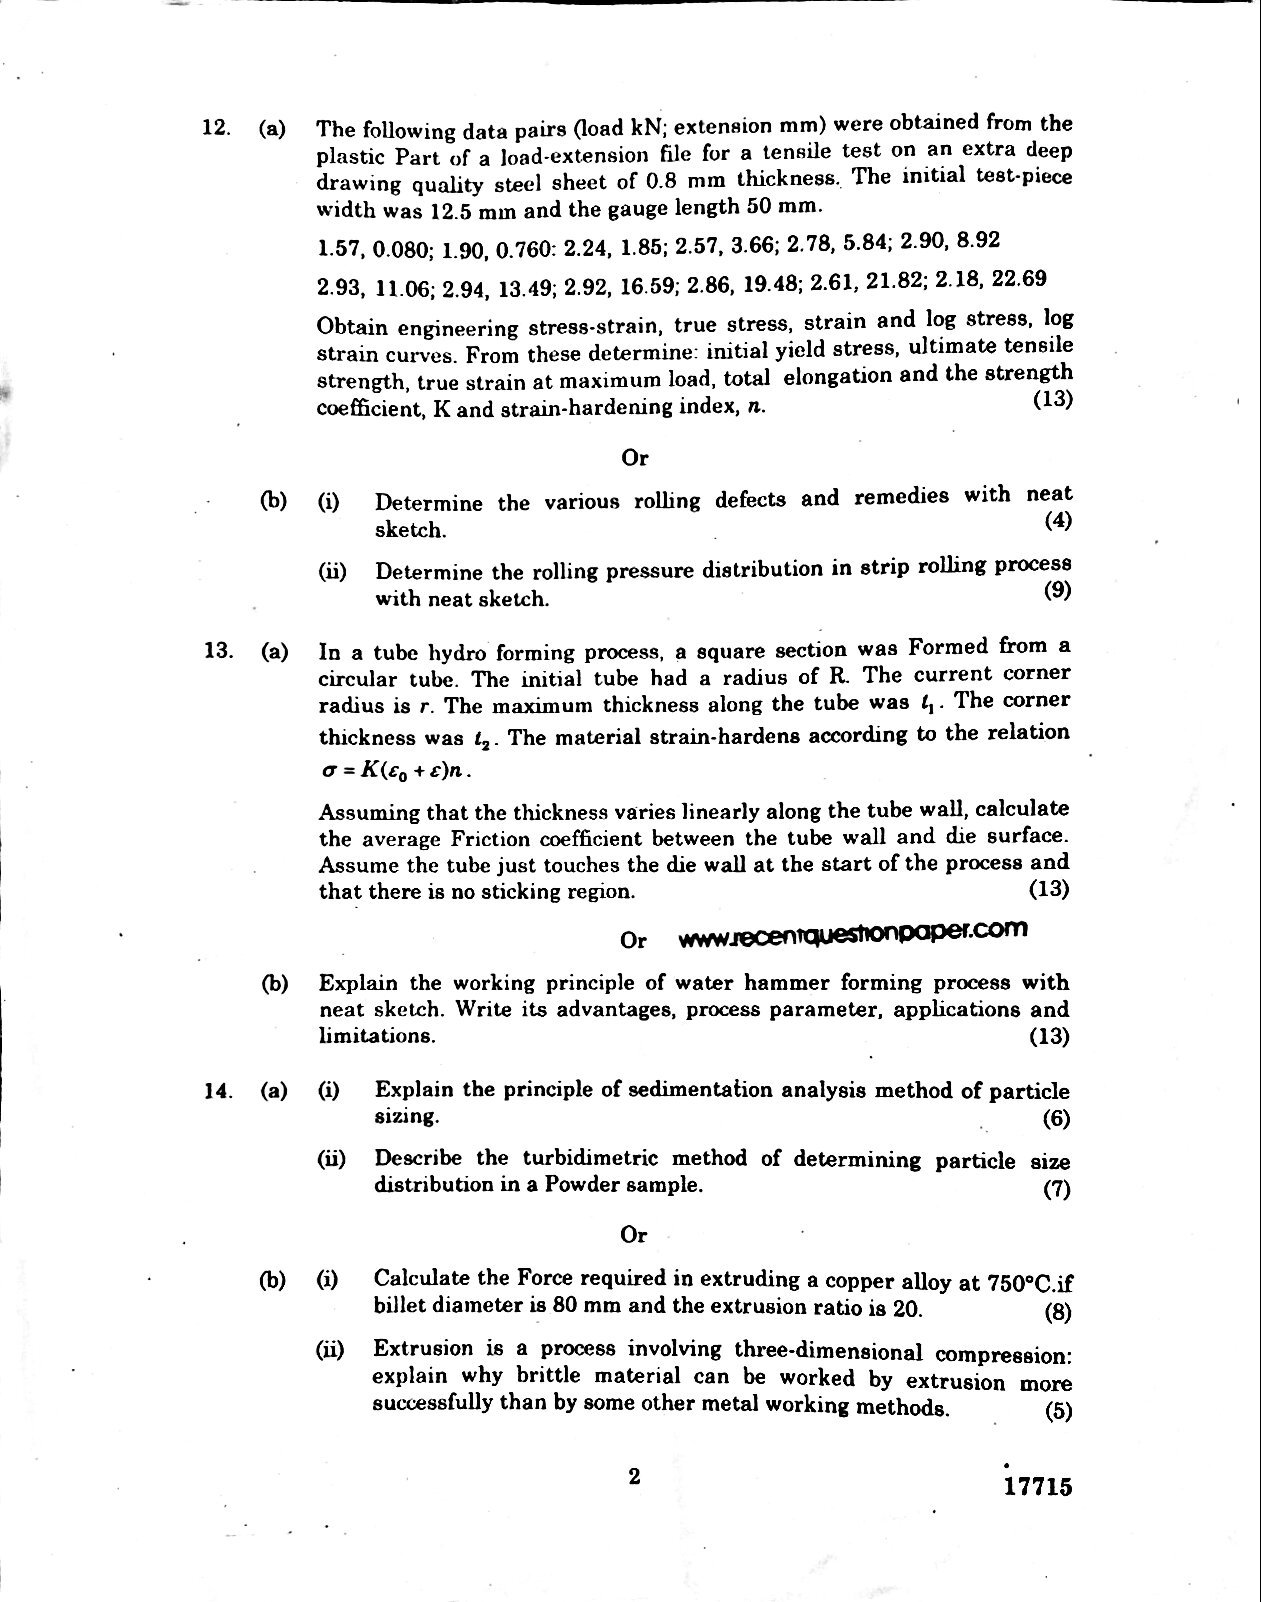 Theory Of Metal Forming-Anna University Question paper Nov/Dec 2016